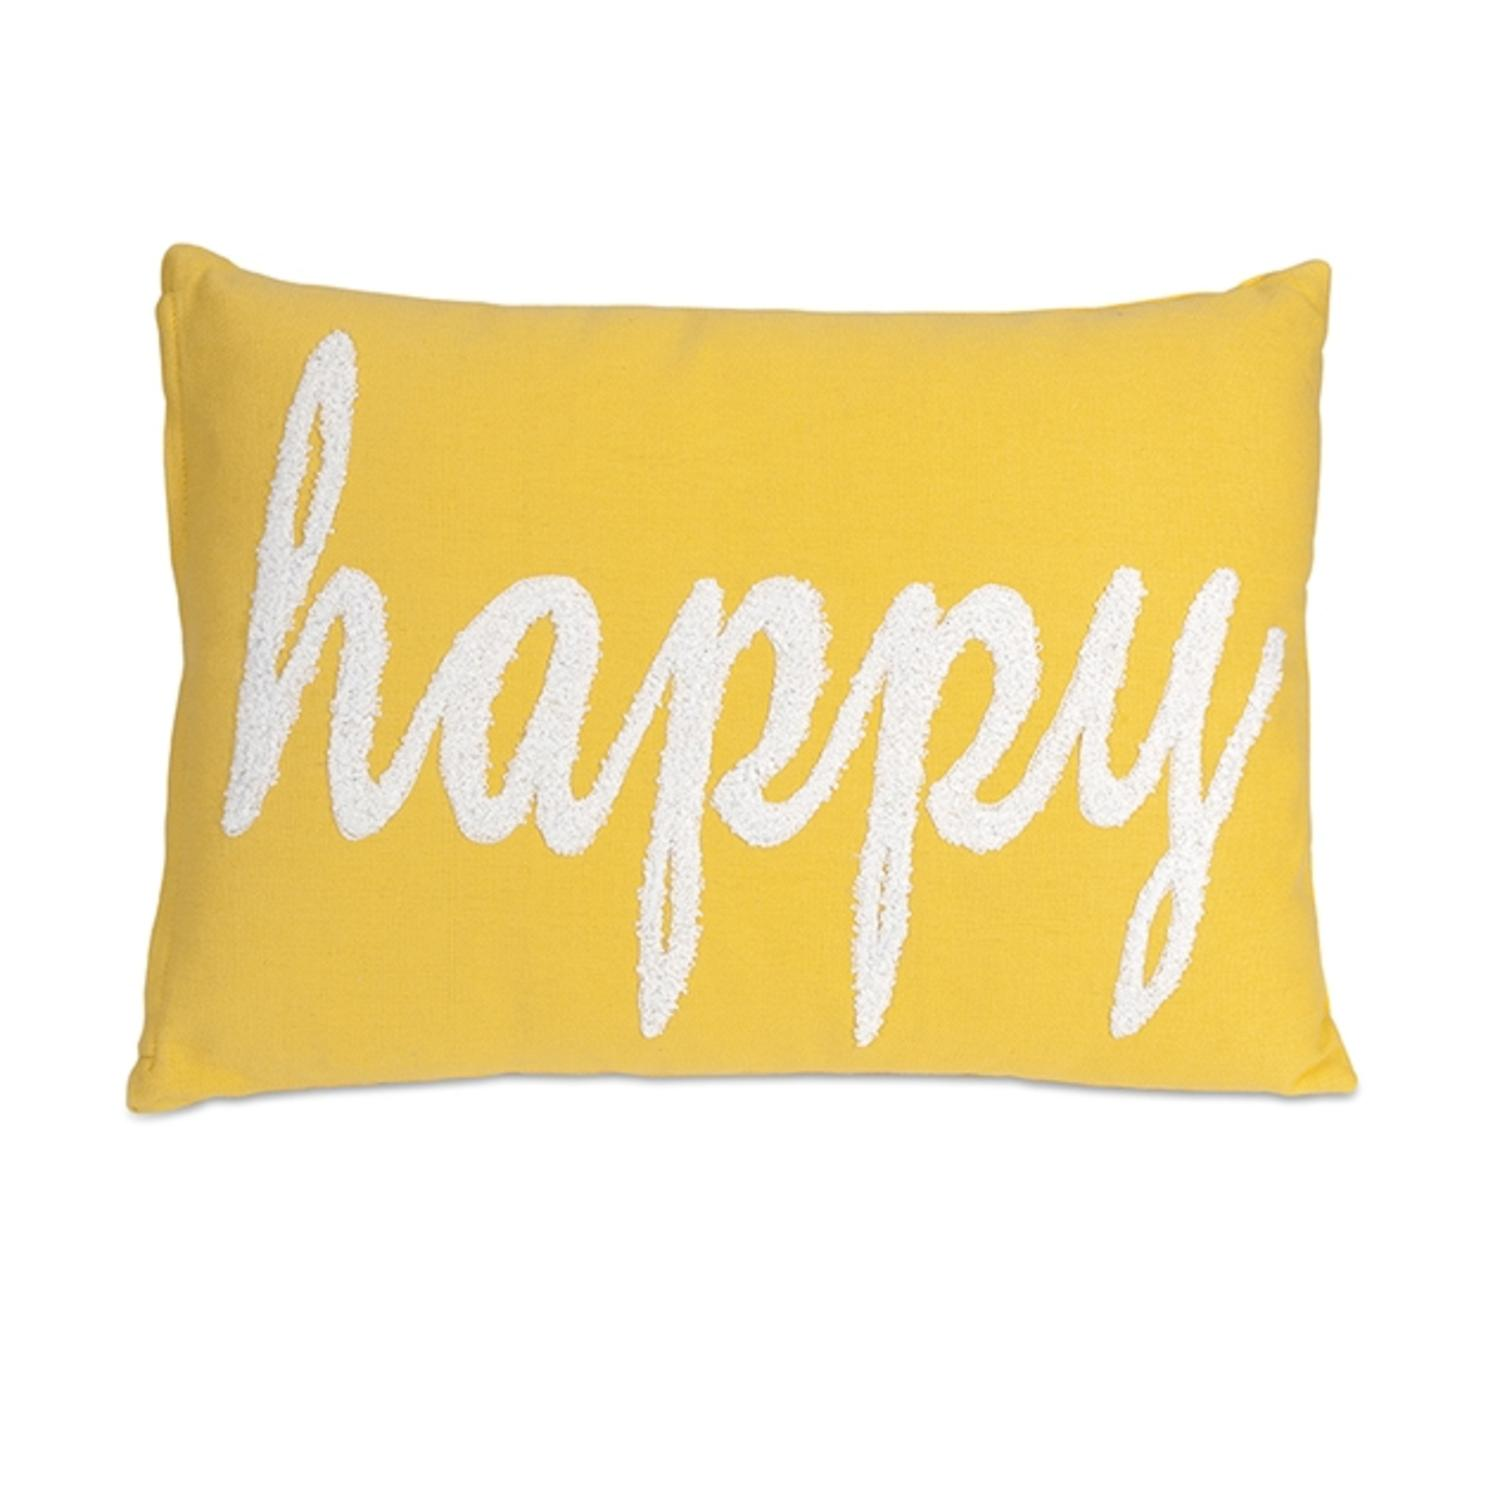 20 Embroidered Lemon Yellow And White Hy Decorative Throw Pillow